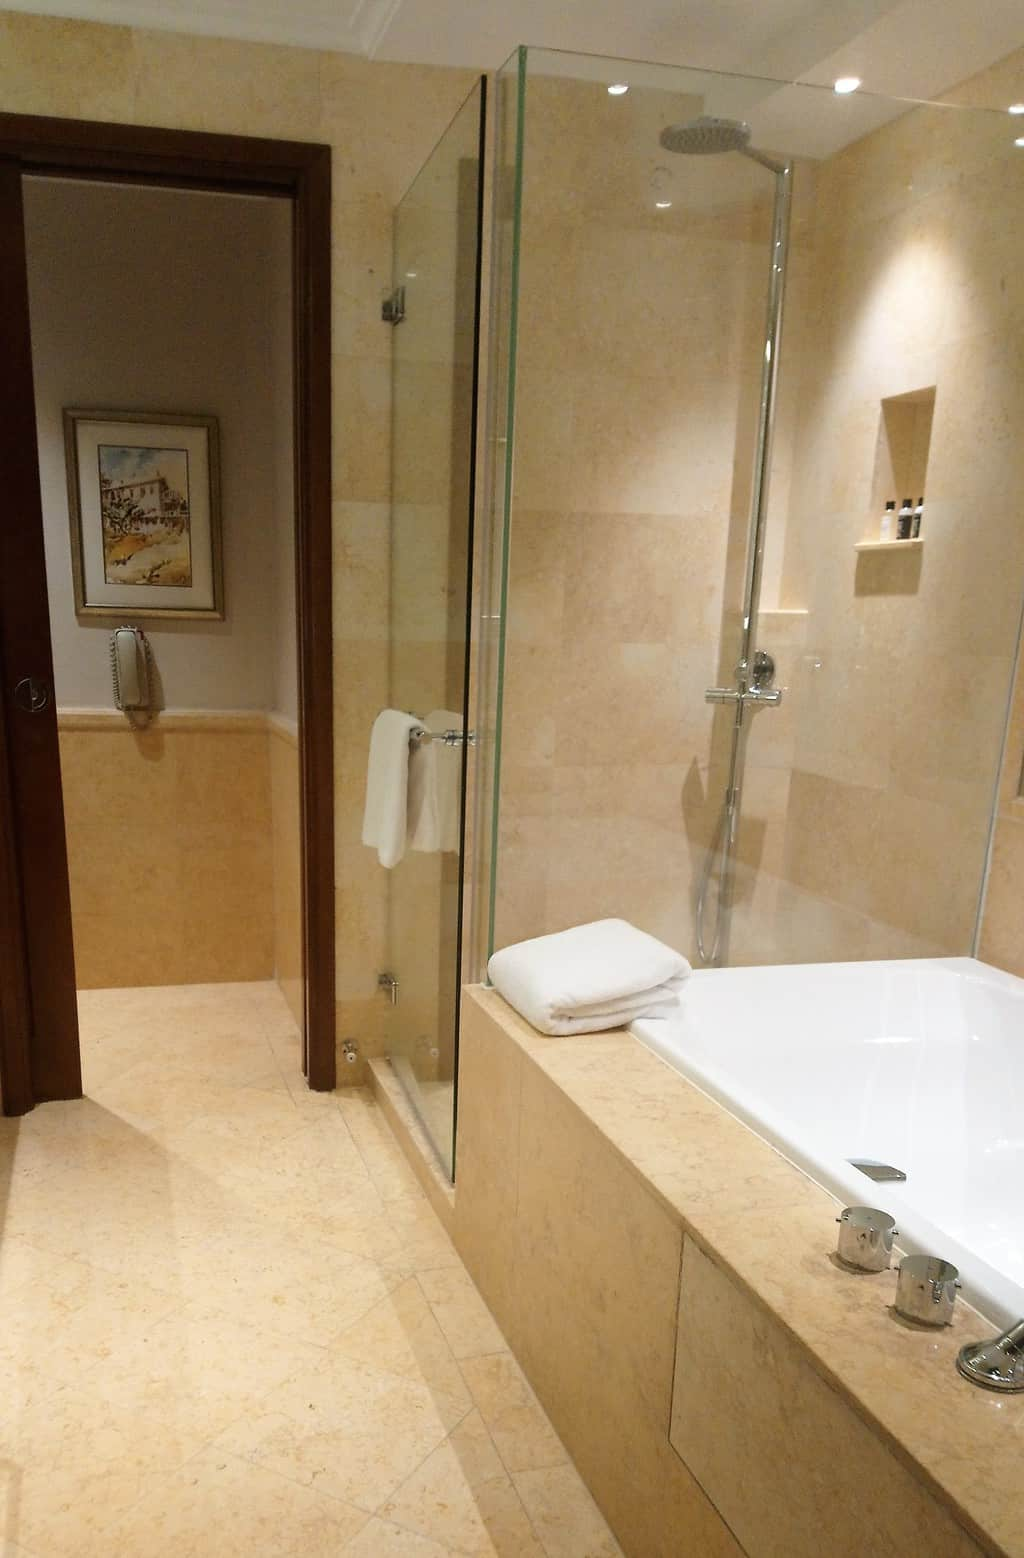 View of the bath and shower in the bathroom of a Premier Courtyard Room at The Fullerton Hotel in Singapore